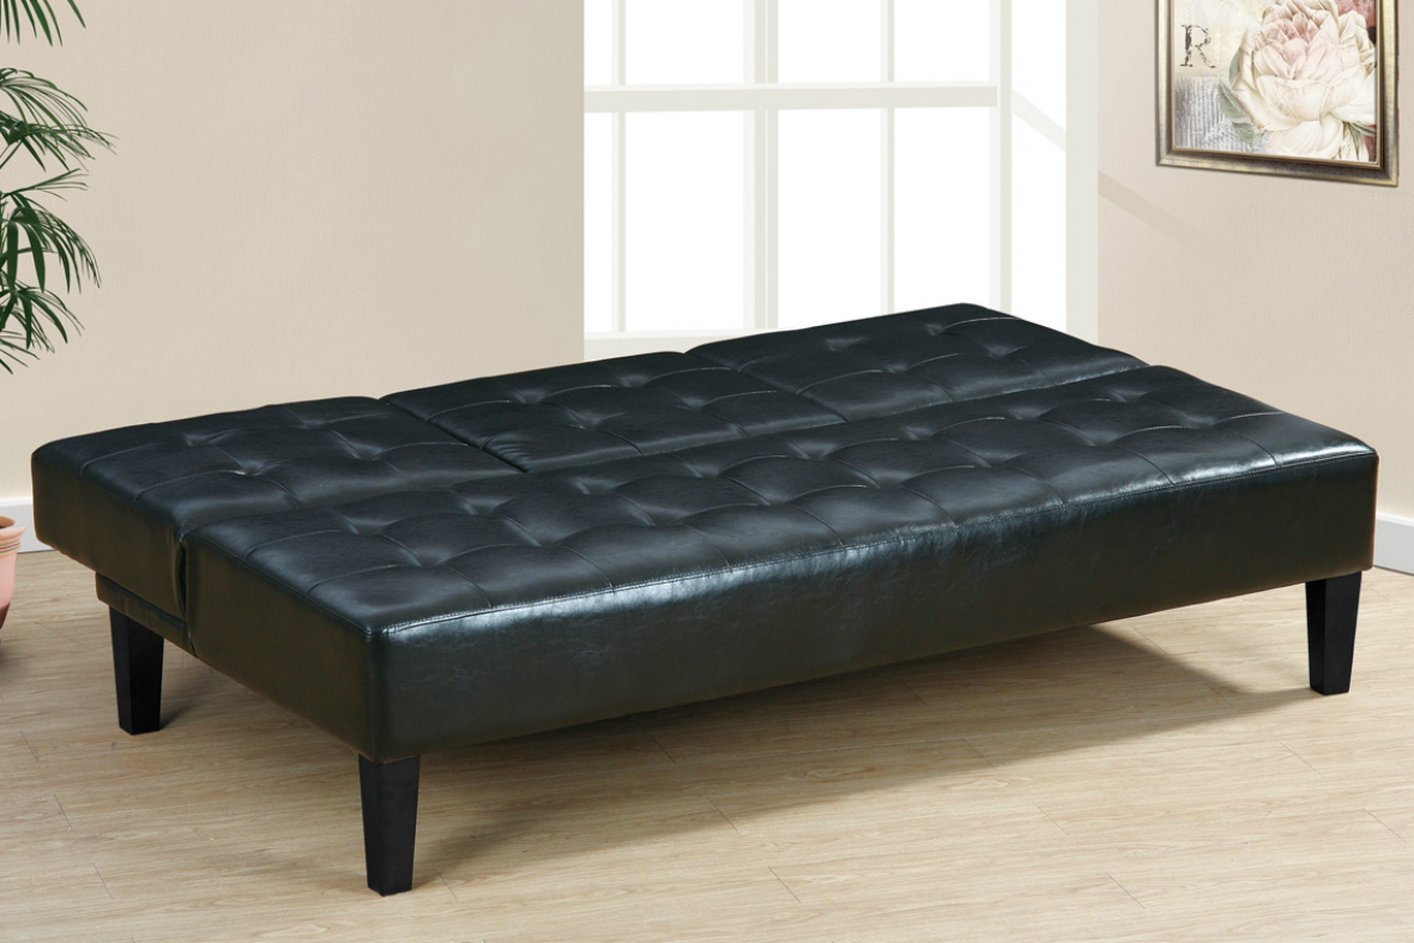 Poundex F7209 Black Twin Size Leather Sofa Bed Steal A Sofa Furniture Outlet Los Angeles Ca